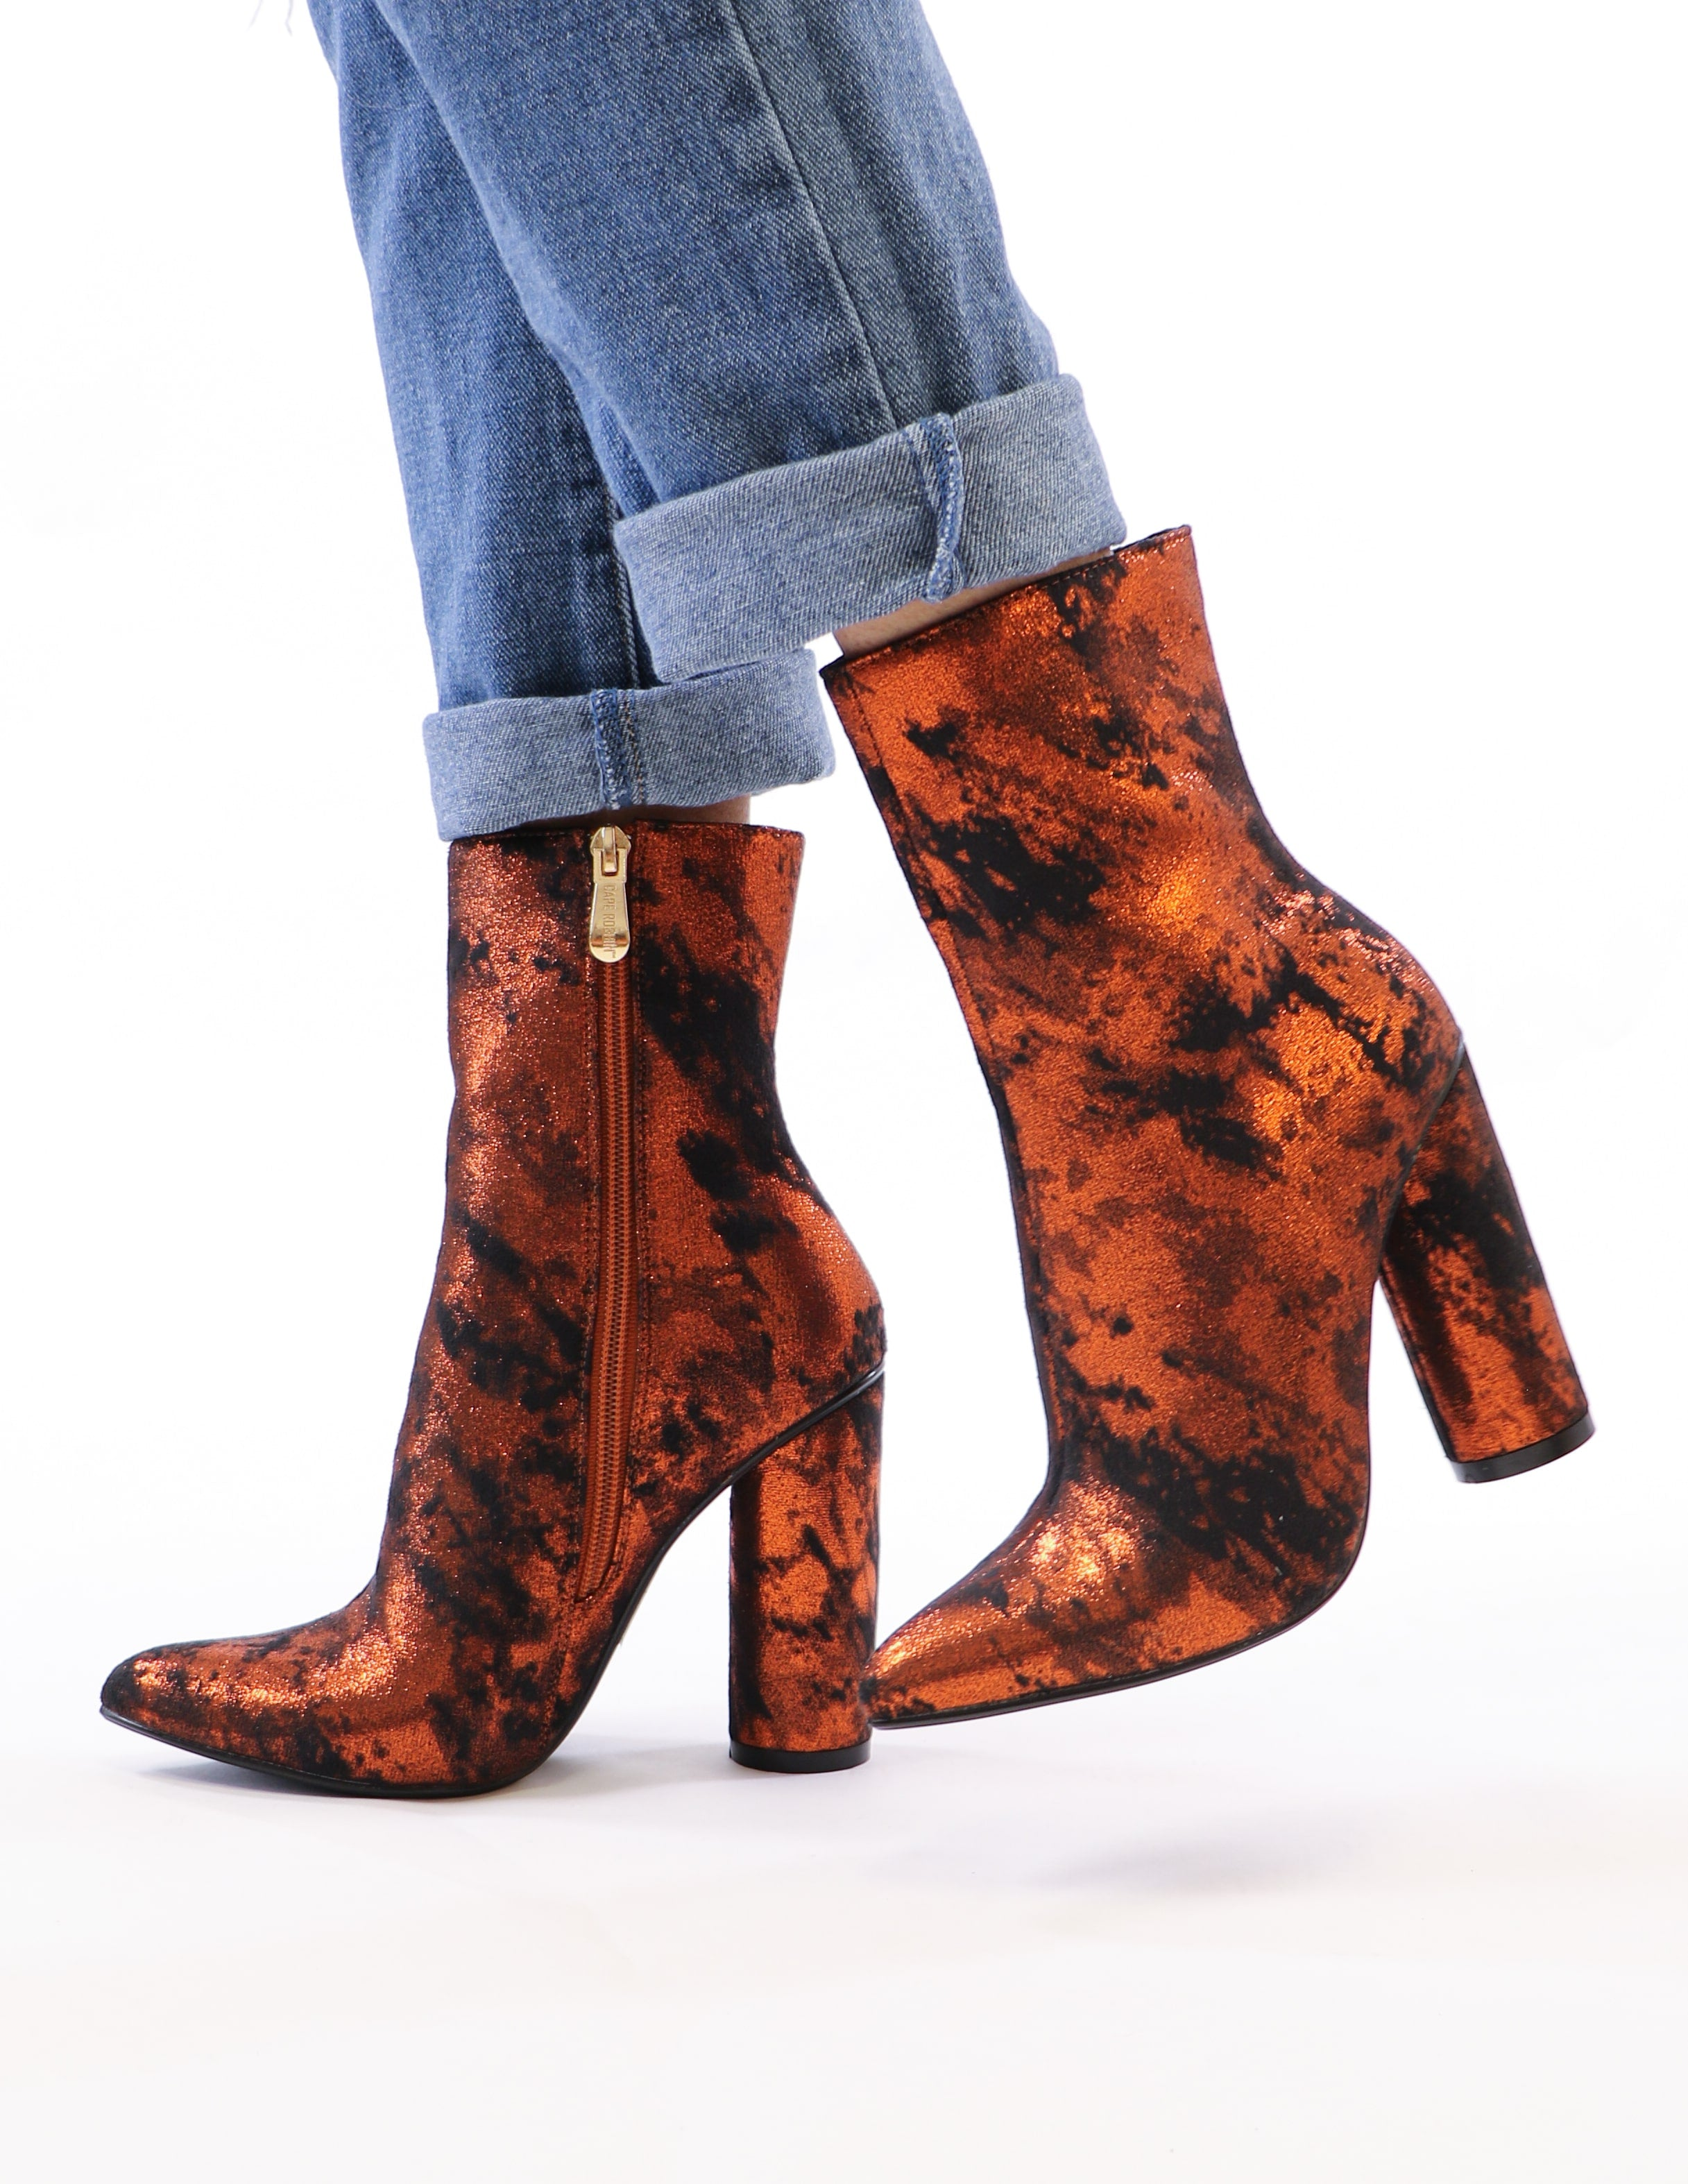 model standing in rust metallic booties - elle bleu shoes